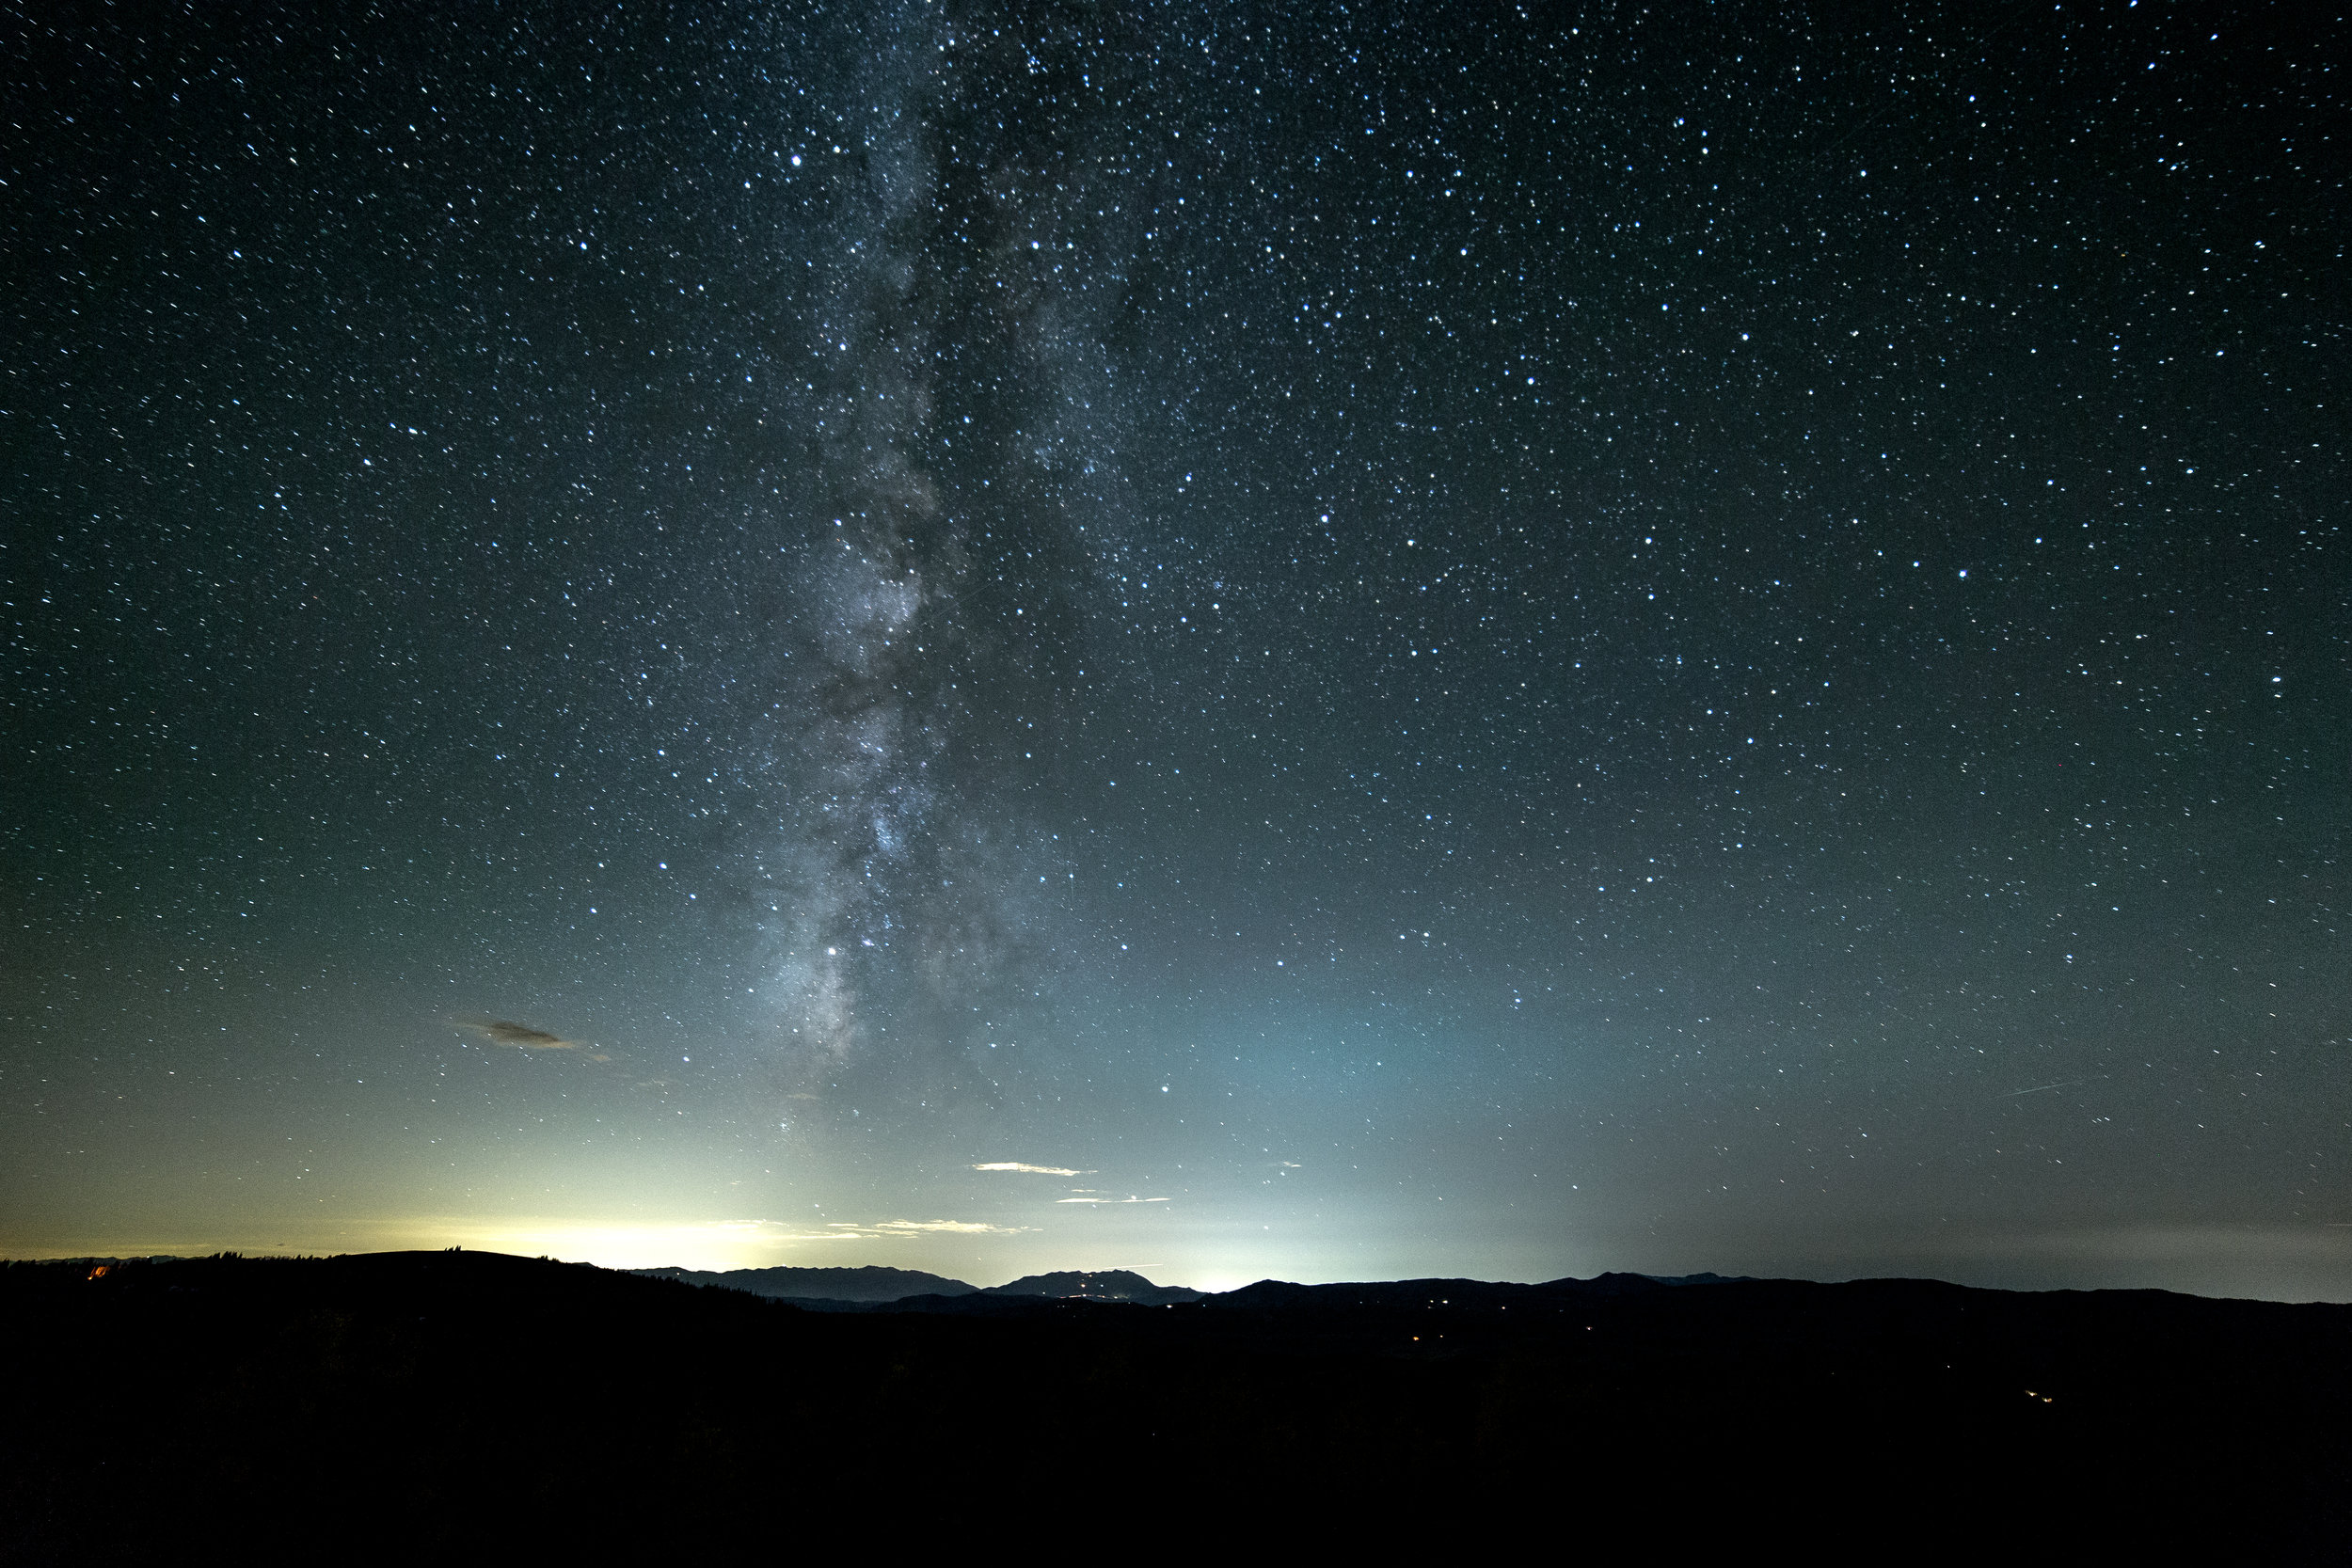 Milky Way rising over Ogden. Shot with 14mm Rokinon lens at f/2.8 Shutter Speed: 20 seconds ISO: 1600